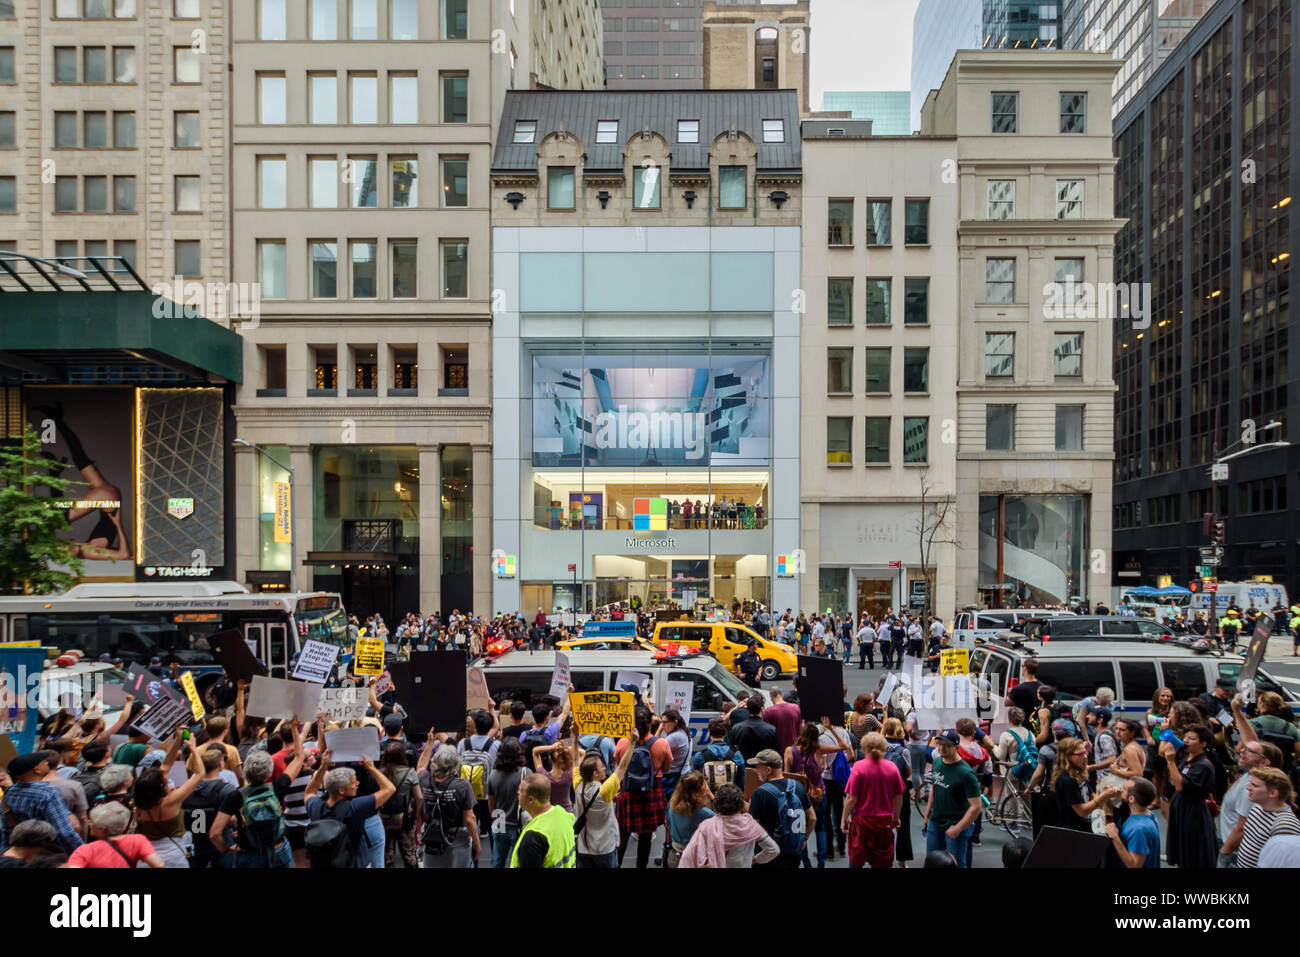 New York, USA. 14th Sep, 2019. A total of 94 protesters were arrested after shutting down the Microsoft retail store in Manhattan and blocking traffic on Fifth Avenue on September 14, 2019 in an act of non violent civil disobedience, while more than 500 members of a large coalition of immigration advocates targeting businesses profiting from the crisis in the border rallied outside. Credit: Erik McGregor/ZUMA Wire/Alamy Live News Stock Photo